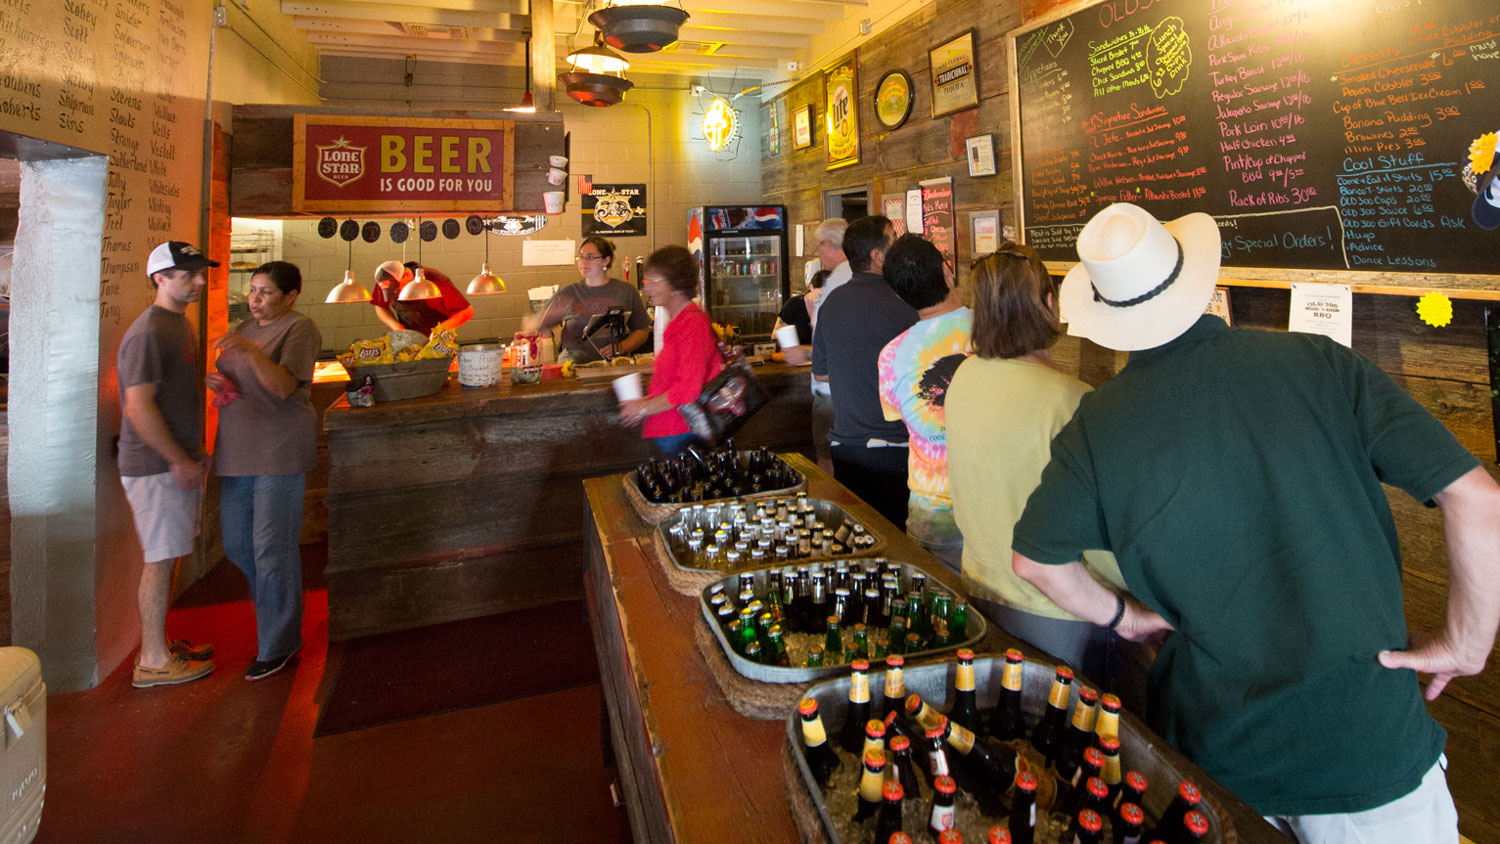 Customers view the menu as they wait in line to order at Old 300 BBQ